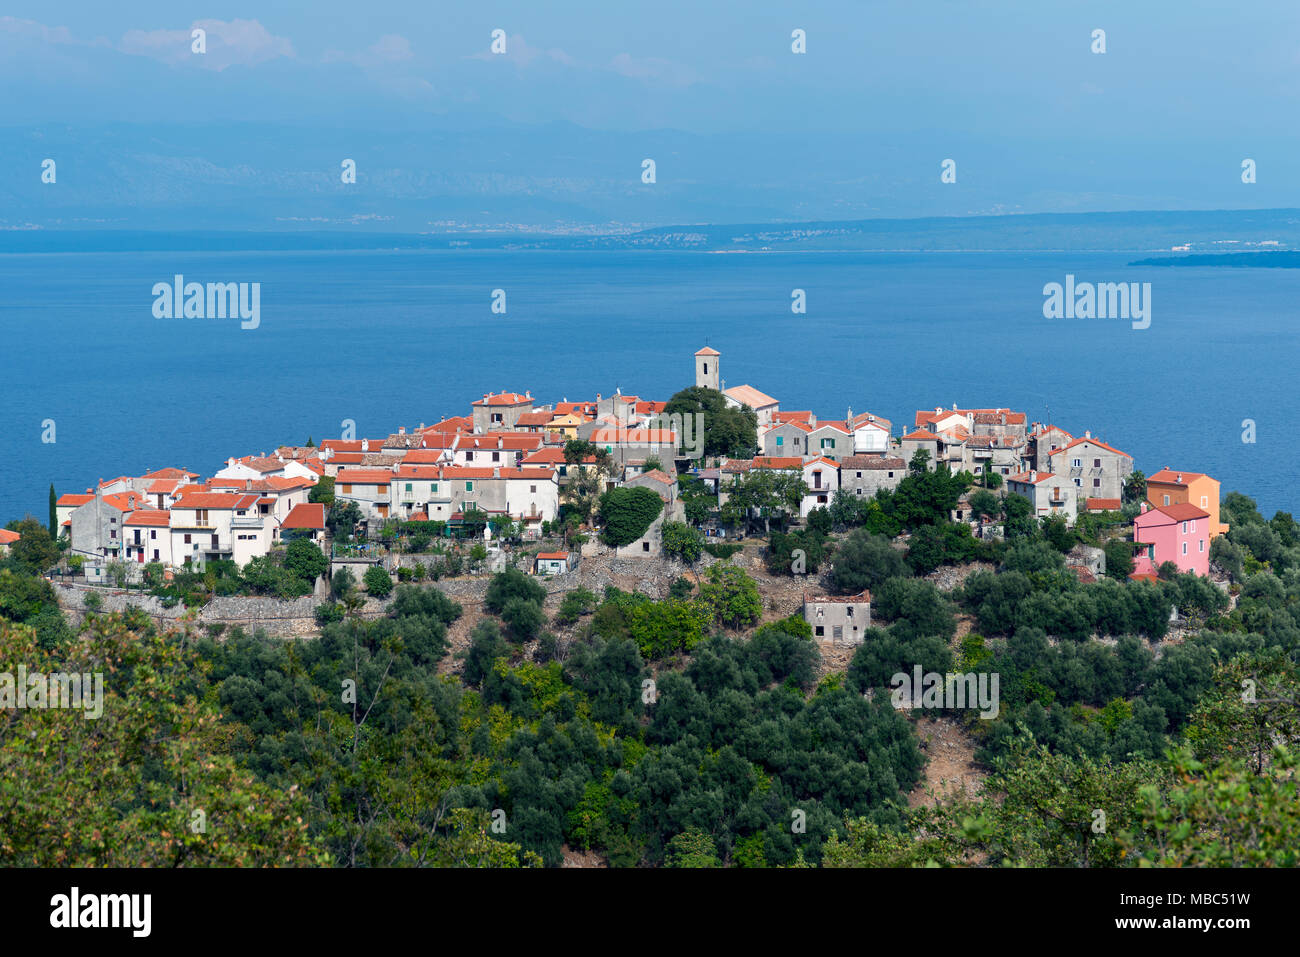 View of Beli, Cres Island, Kvarner Gulf Bay, Croatia Stock Photo